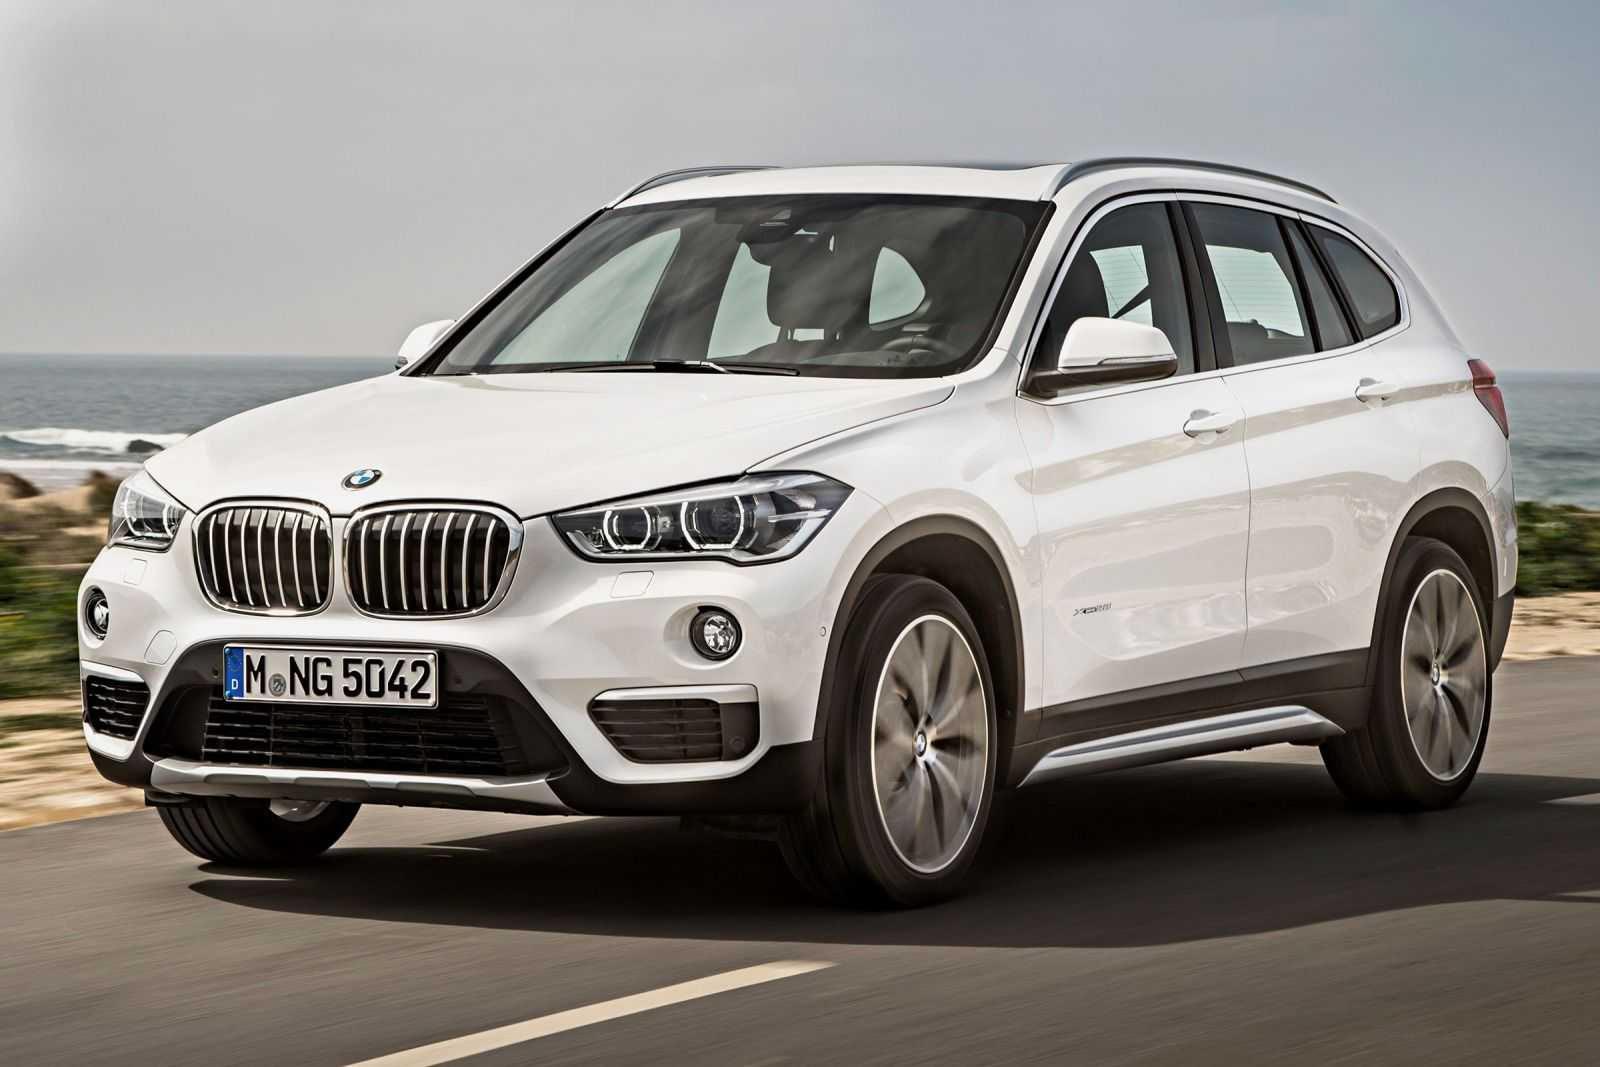 2016 BMW X1 is a Perfect Blend of SUV and Sedan in a Mini Chassis